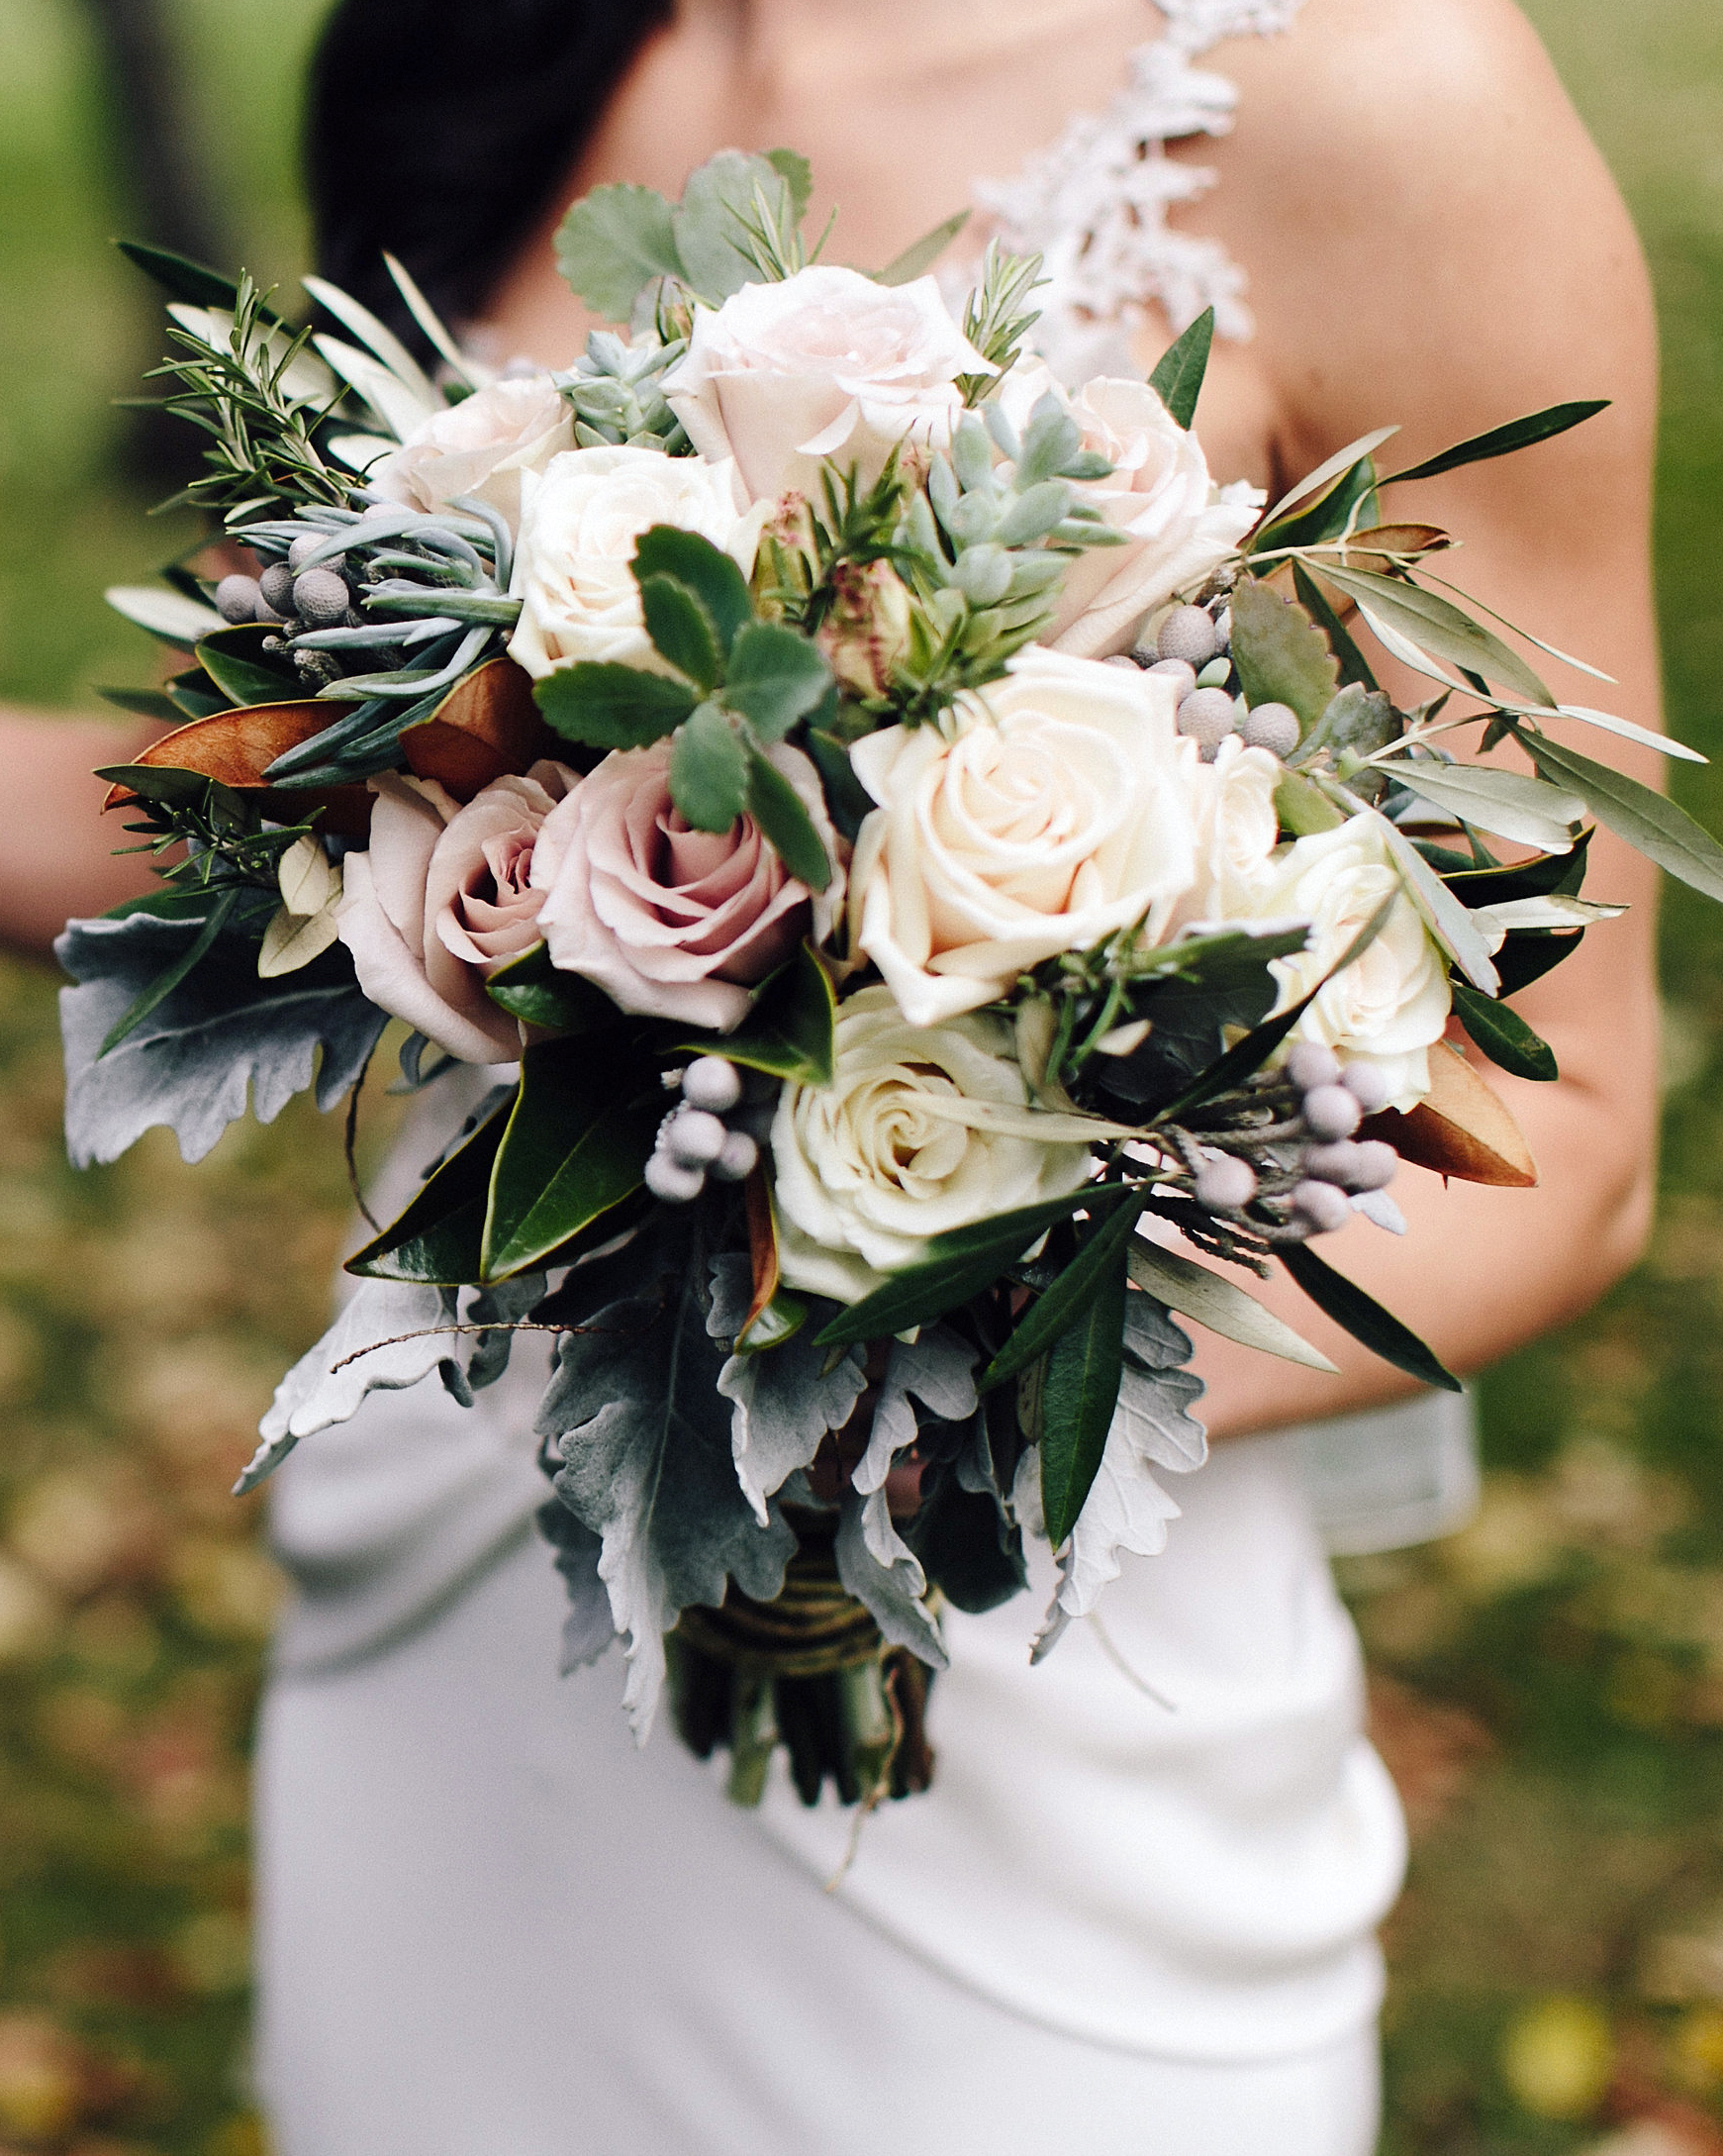 rosie-constantine-wedding-bouquet-329-s112177-1015.jpg